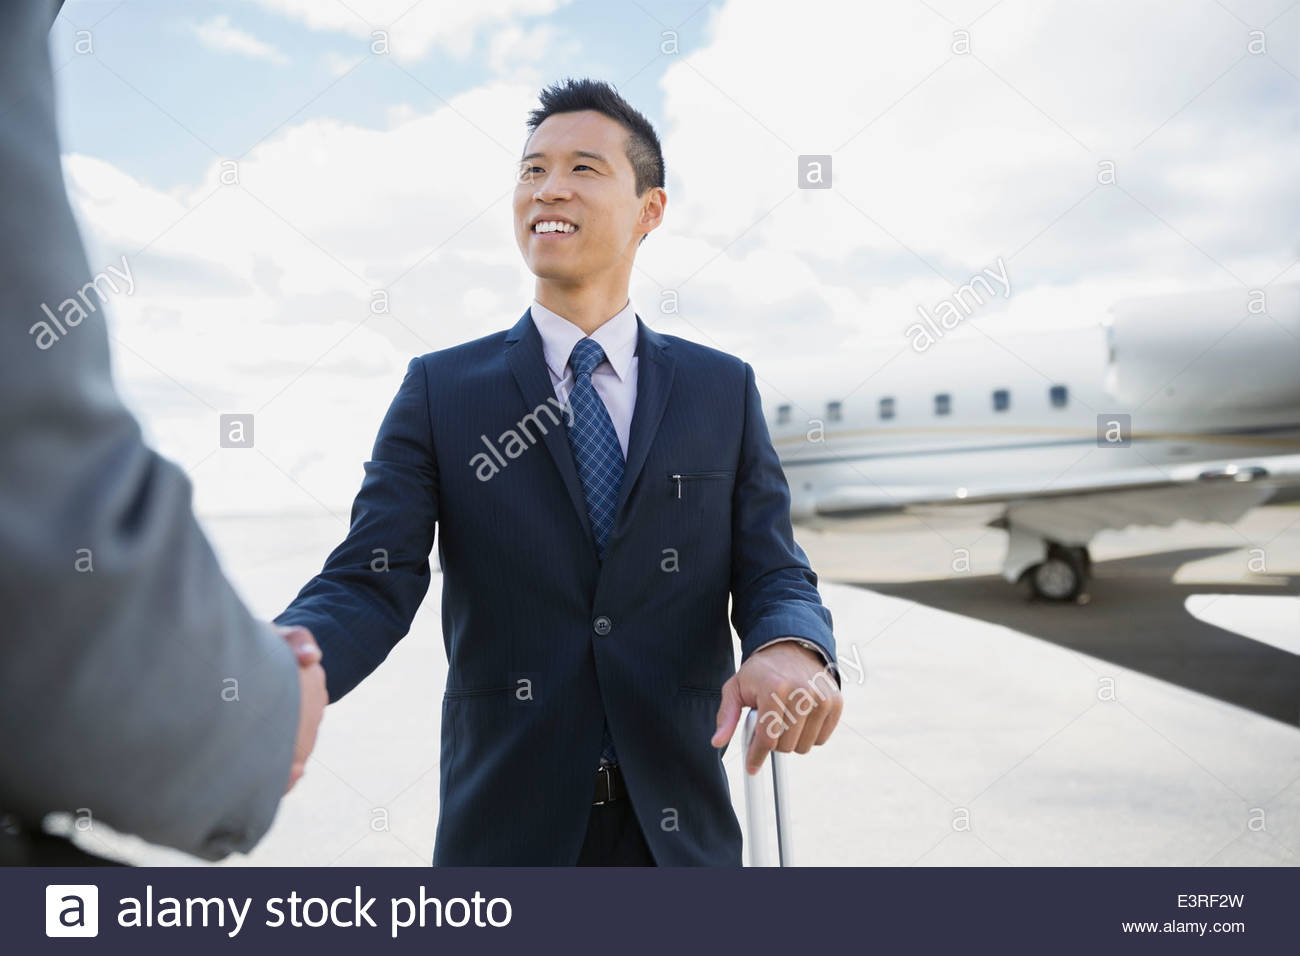 Businessmen handshaking on tarmac with corporate jet - Stock Image